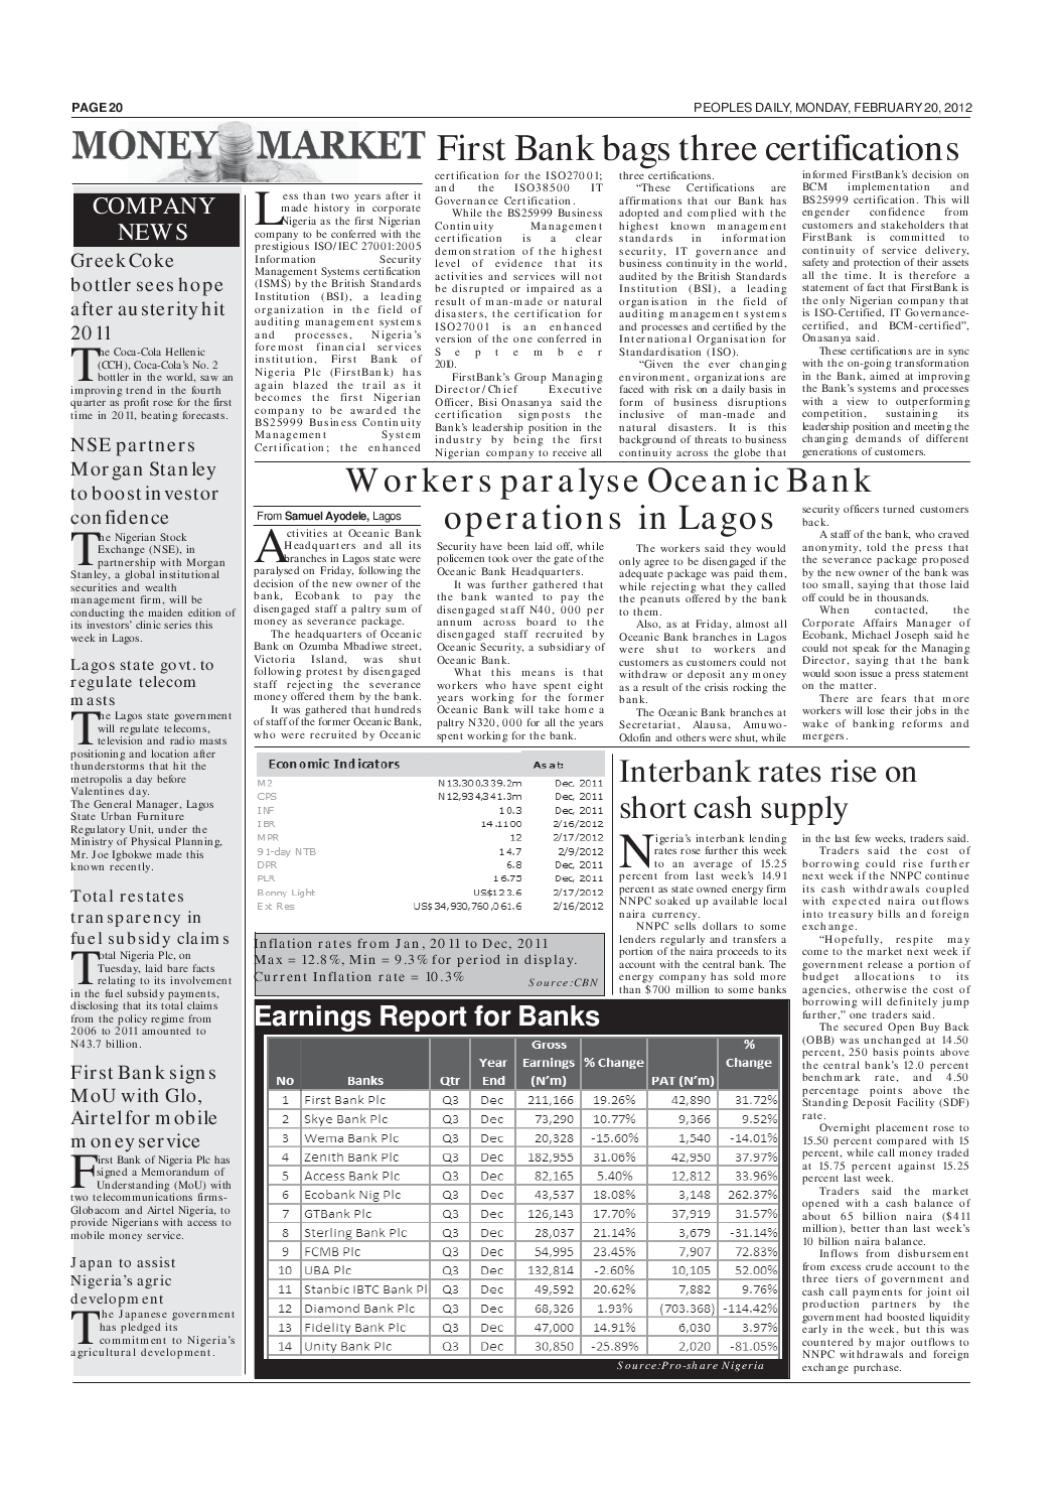 Peoples Daily Newspaper, Monday, February 20, 2012